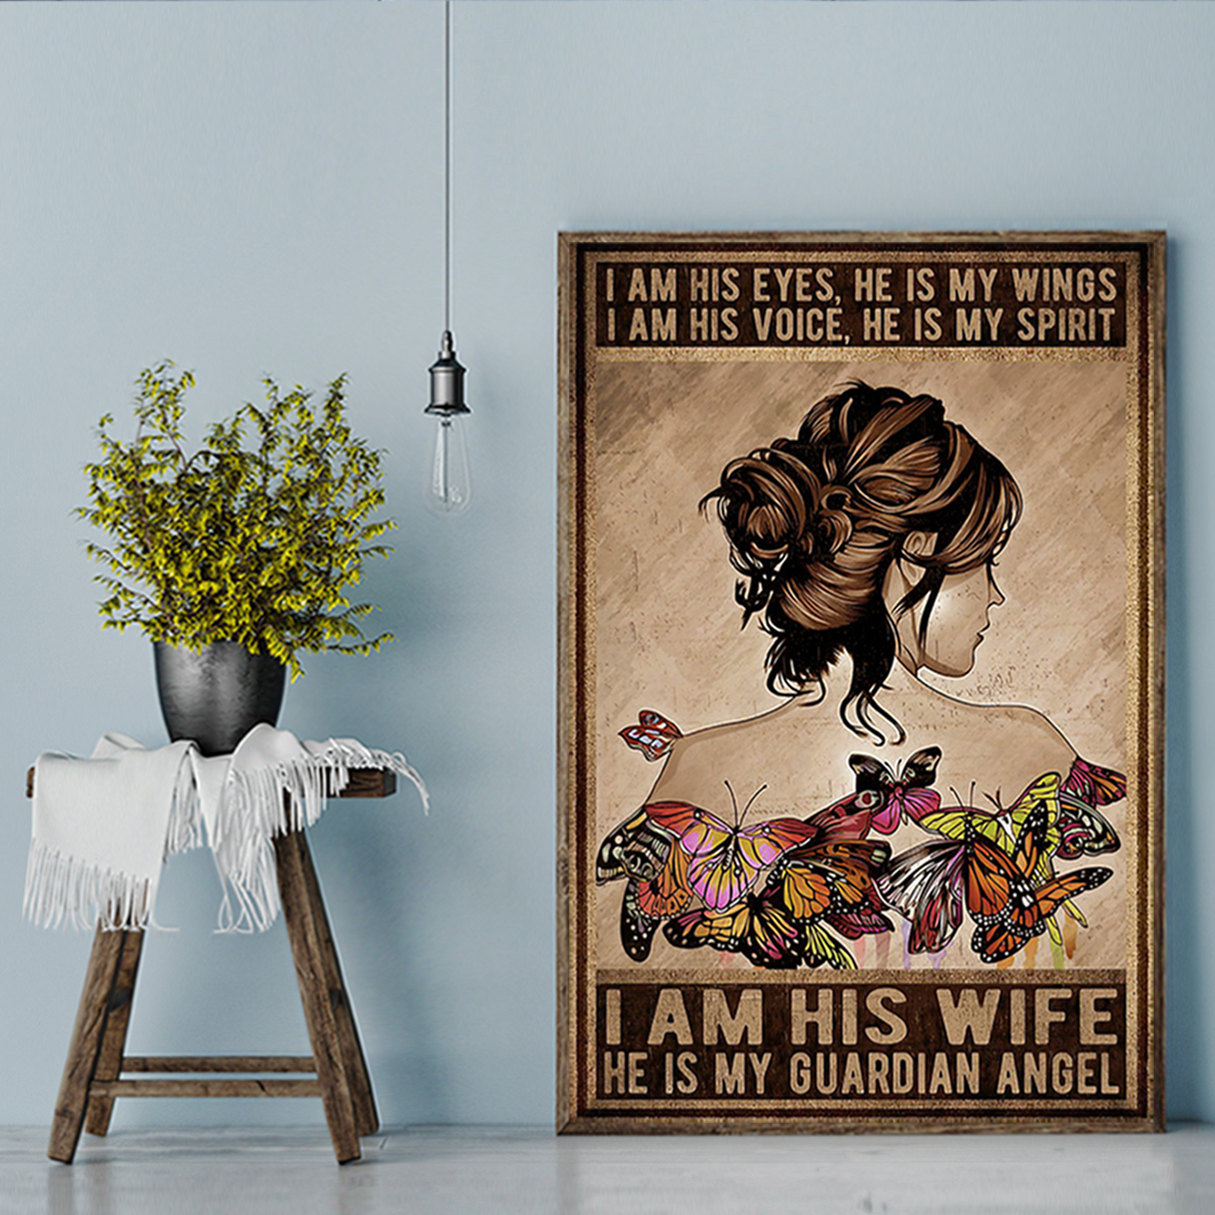 Butterfly girl I am his eyes he is my wings poster A2